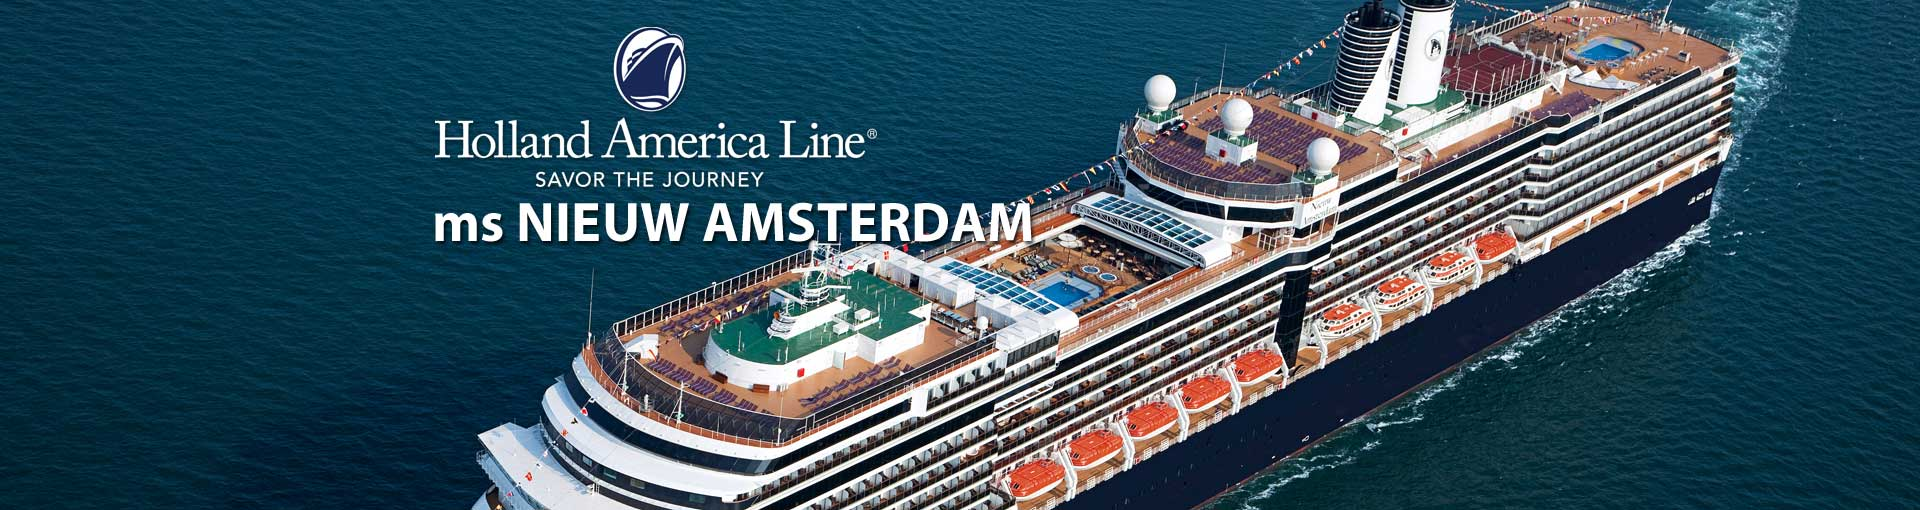 Holland americas ms nieuw amsterdam cruise ship 2017 and 2018 ms holland america ms nieuw amsterdam cruise ship baanklon Gallery